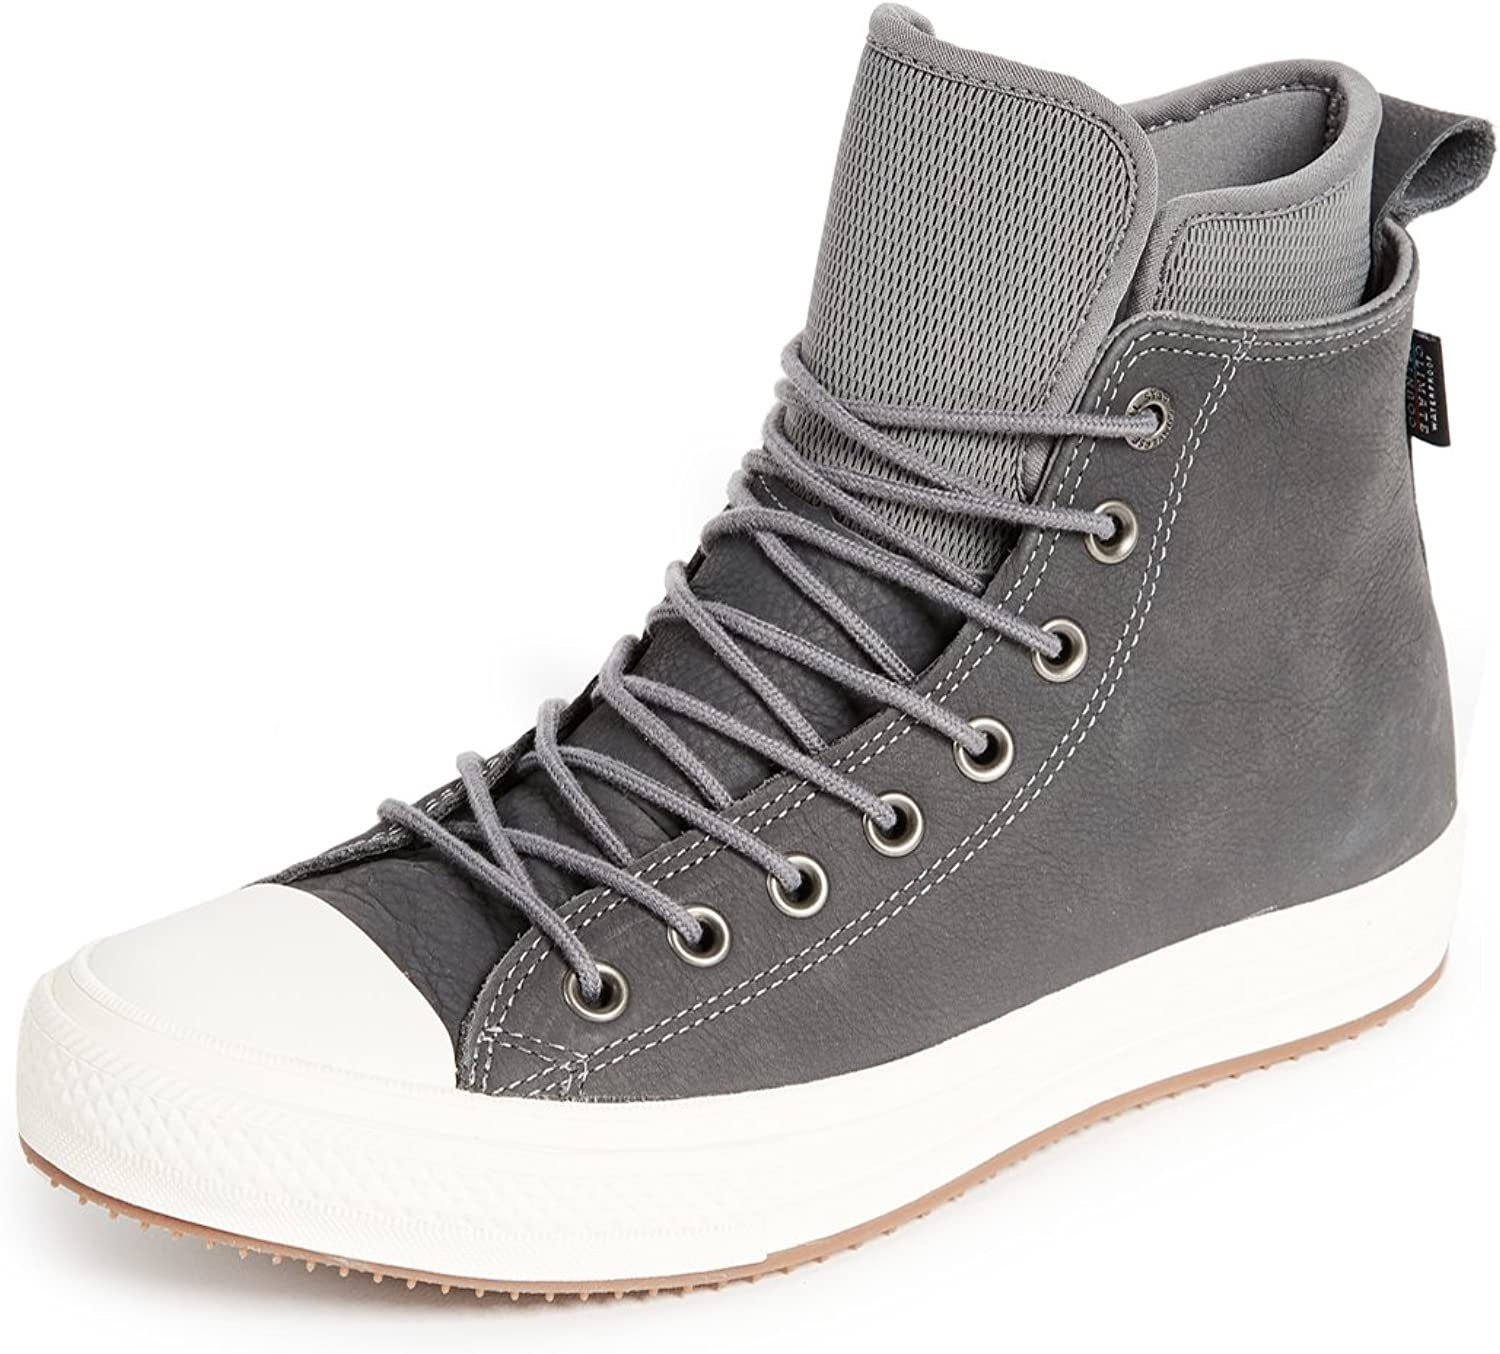 Converse Men's Chuck Taylor All Star Utility Draft Boot Hi Top Trainers, Brown